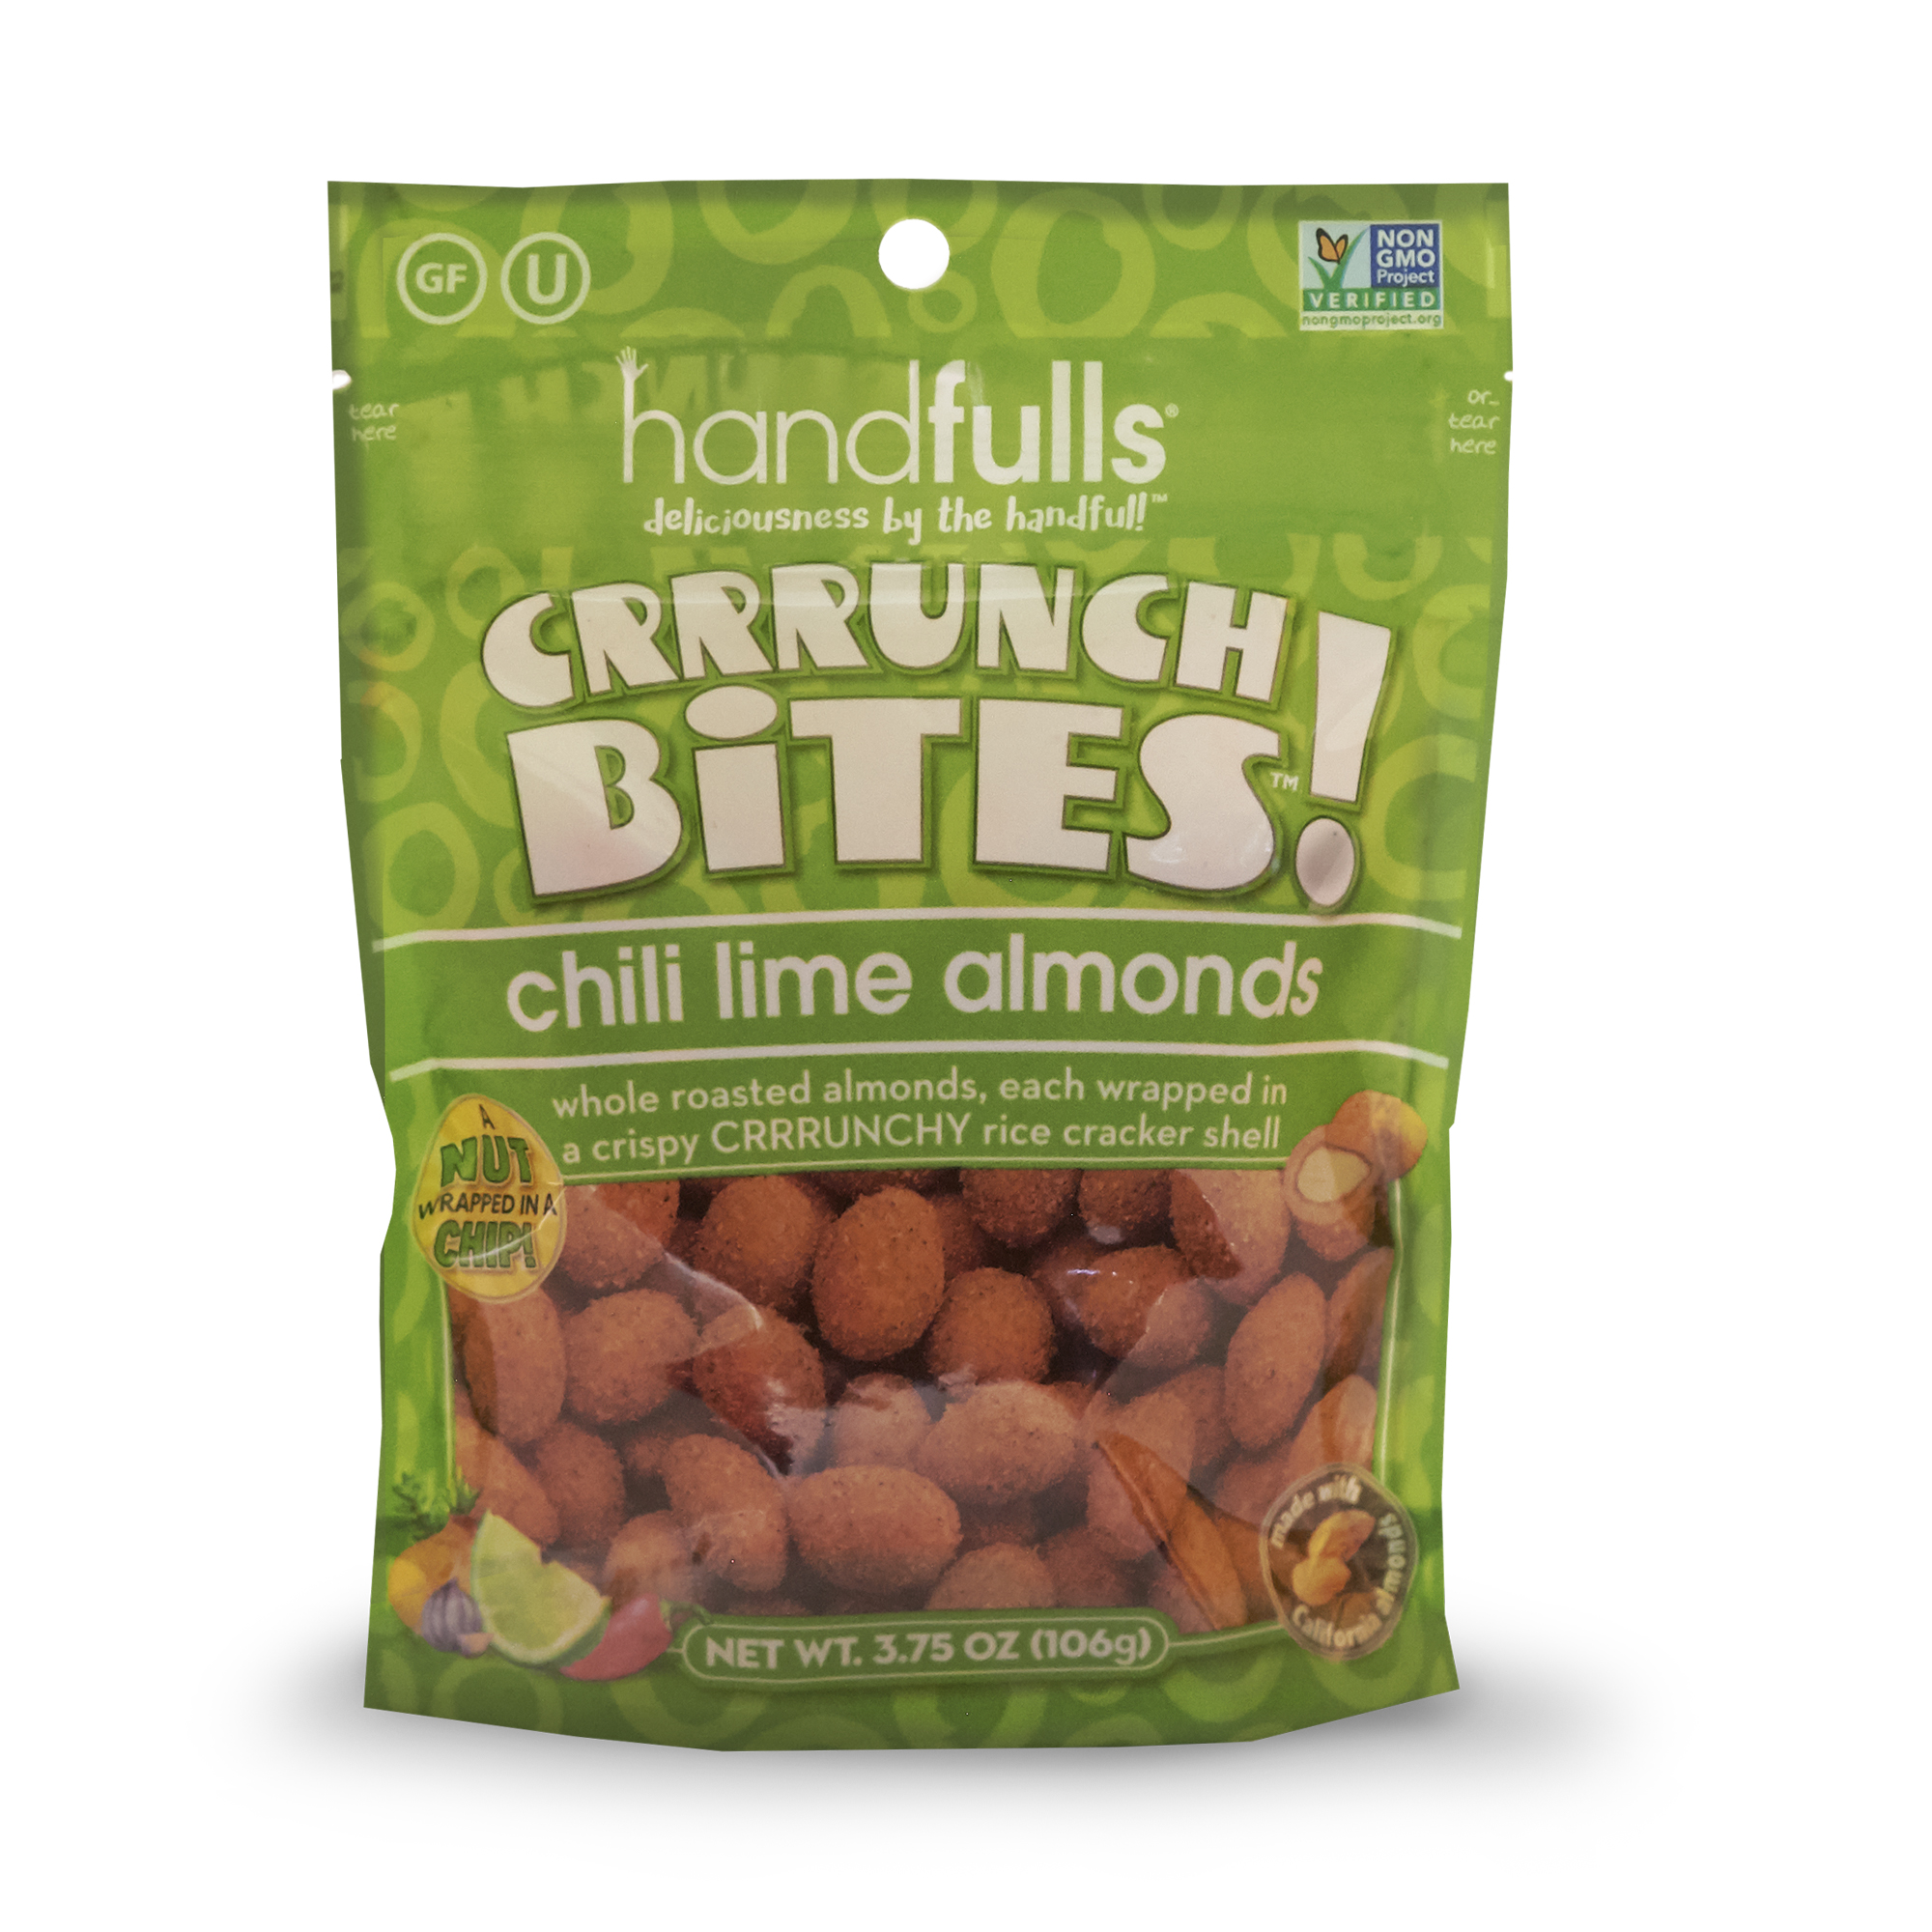 Chili Lime Almonds